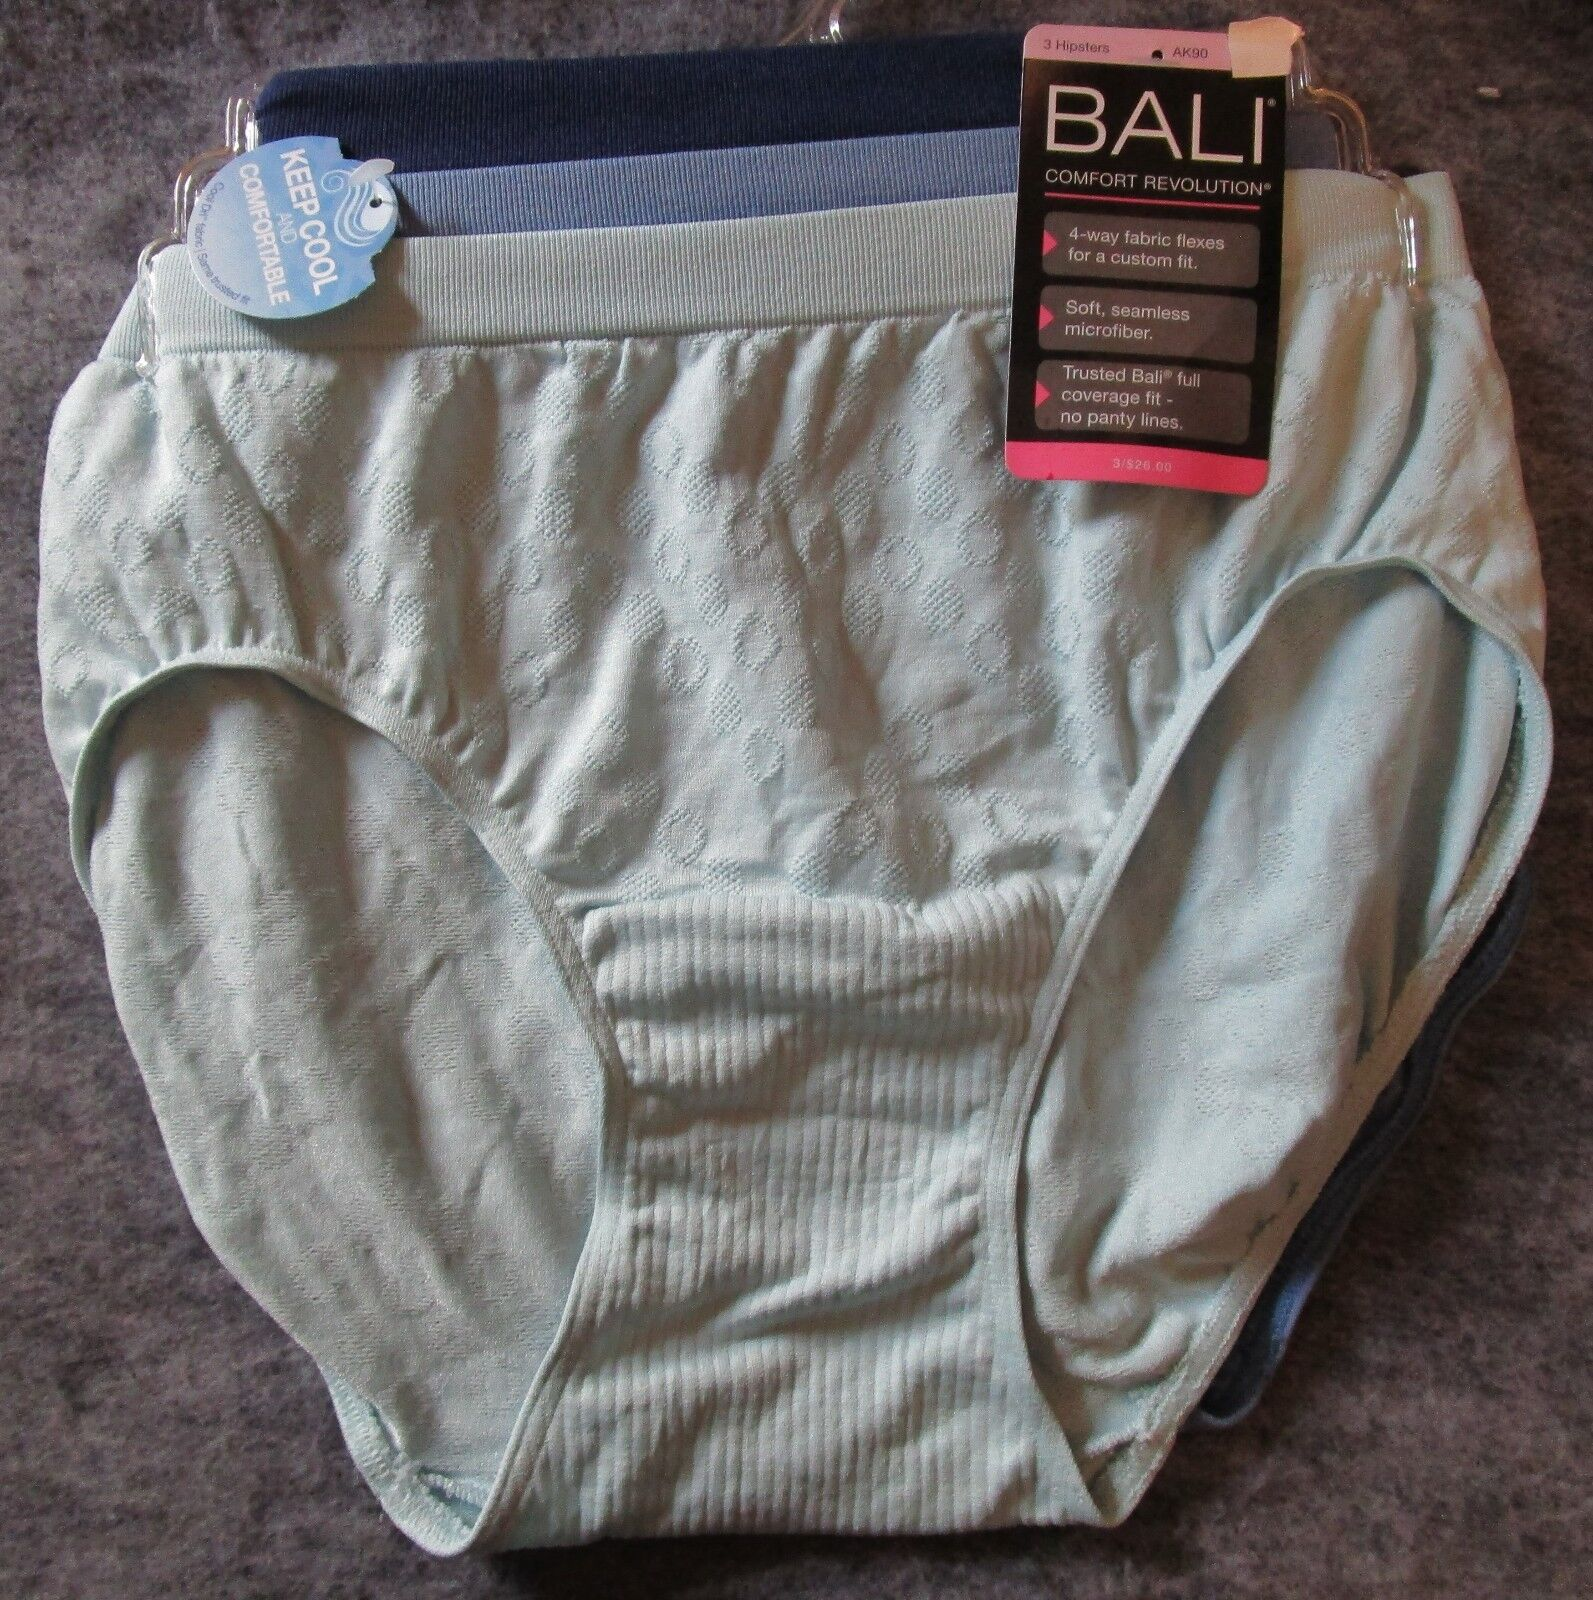 Bali Comfort Revolution Brief 3 Pack Style AK88 Size 8//9 NWT